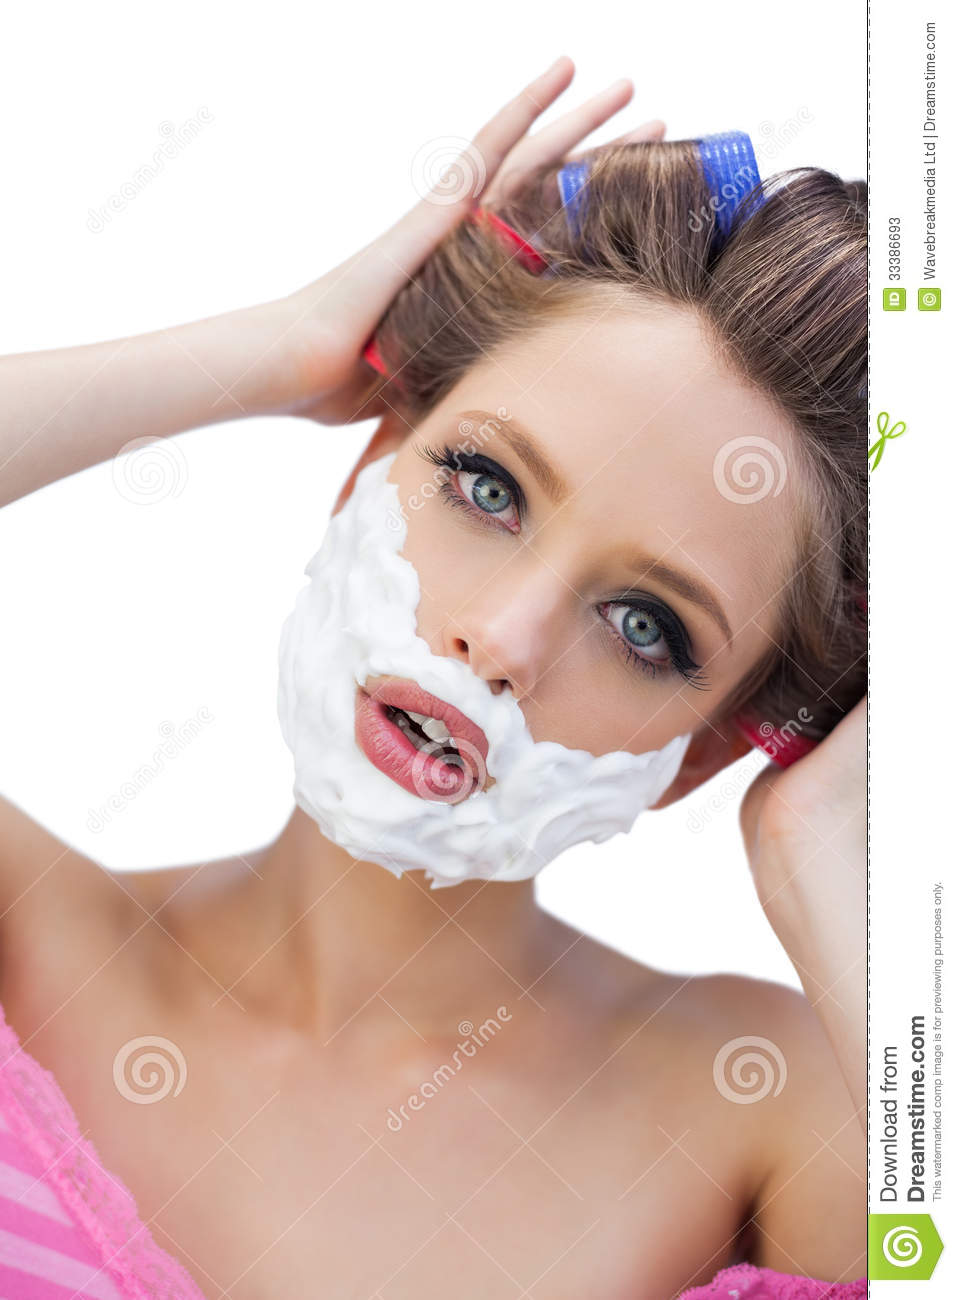 Curious Model In Hair Curlers With Shaving Foam Stock Photos - Image ...